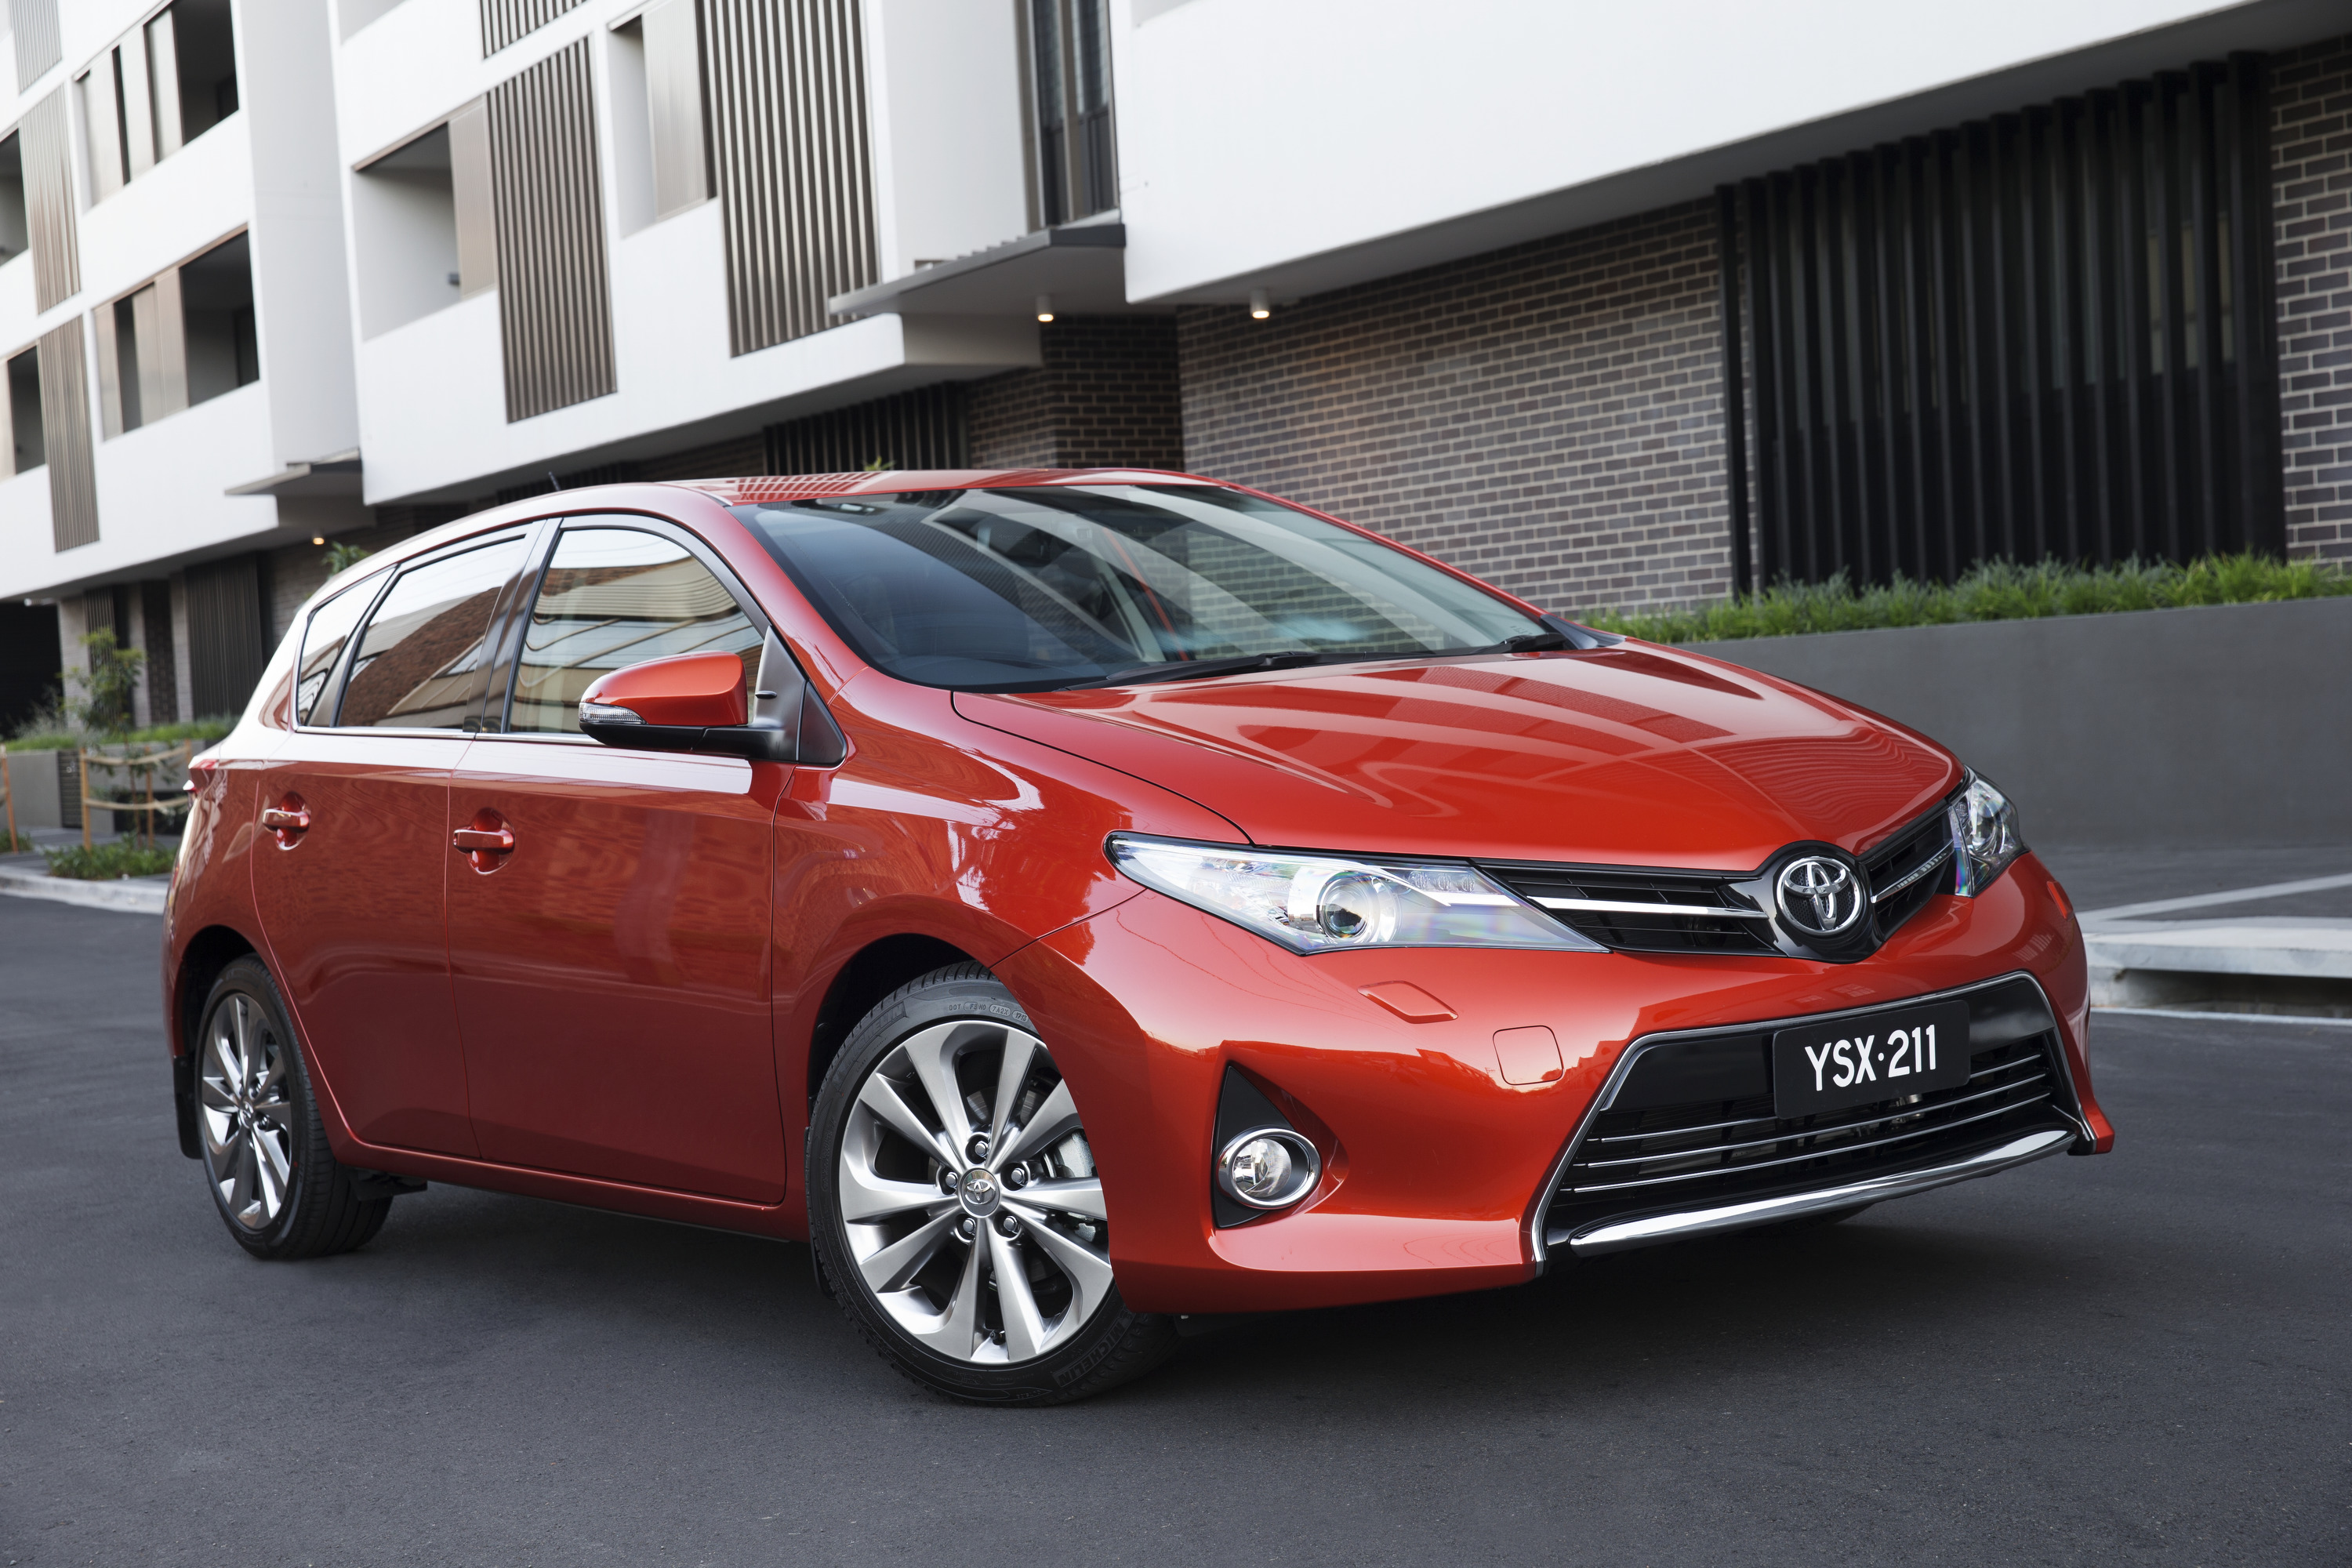 News - Toyota Corolla 2013 Number One Selling Car